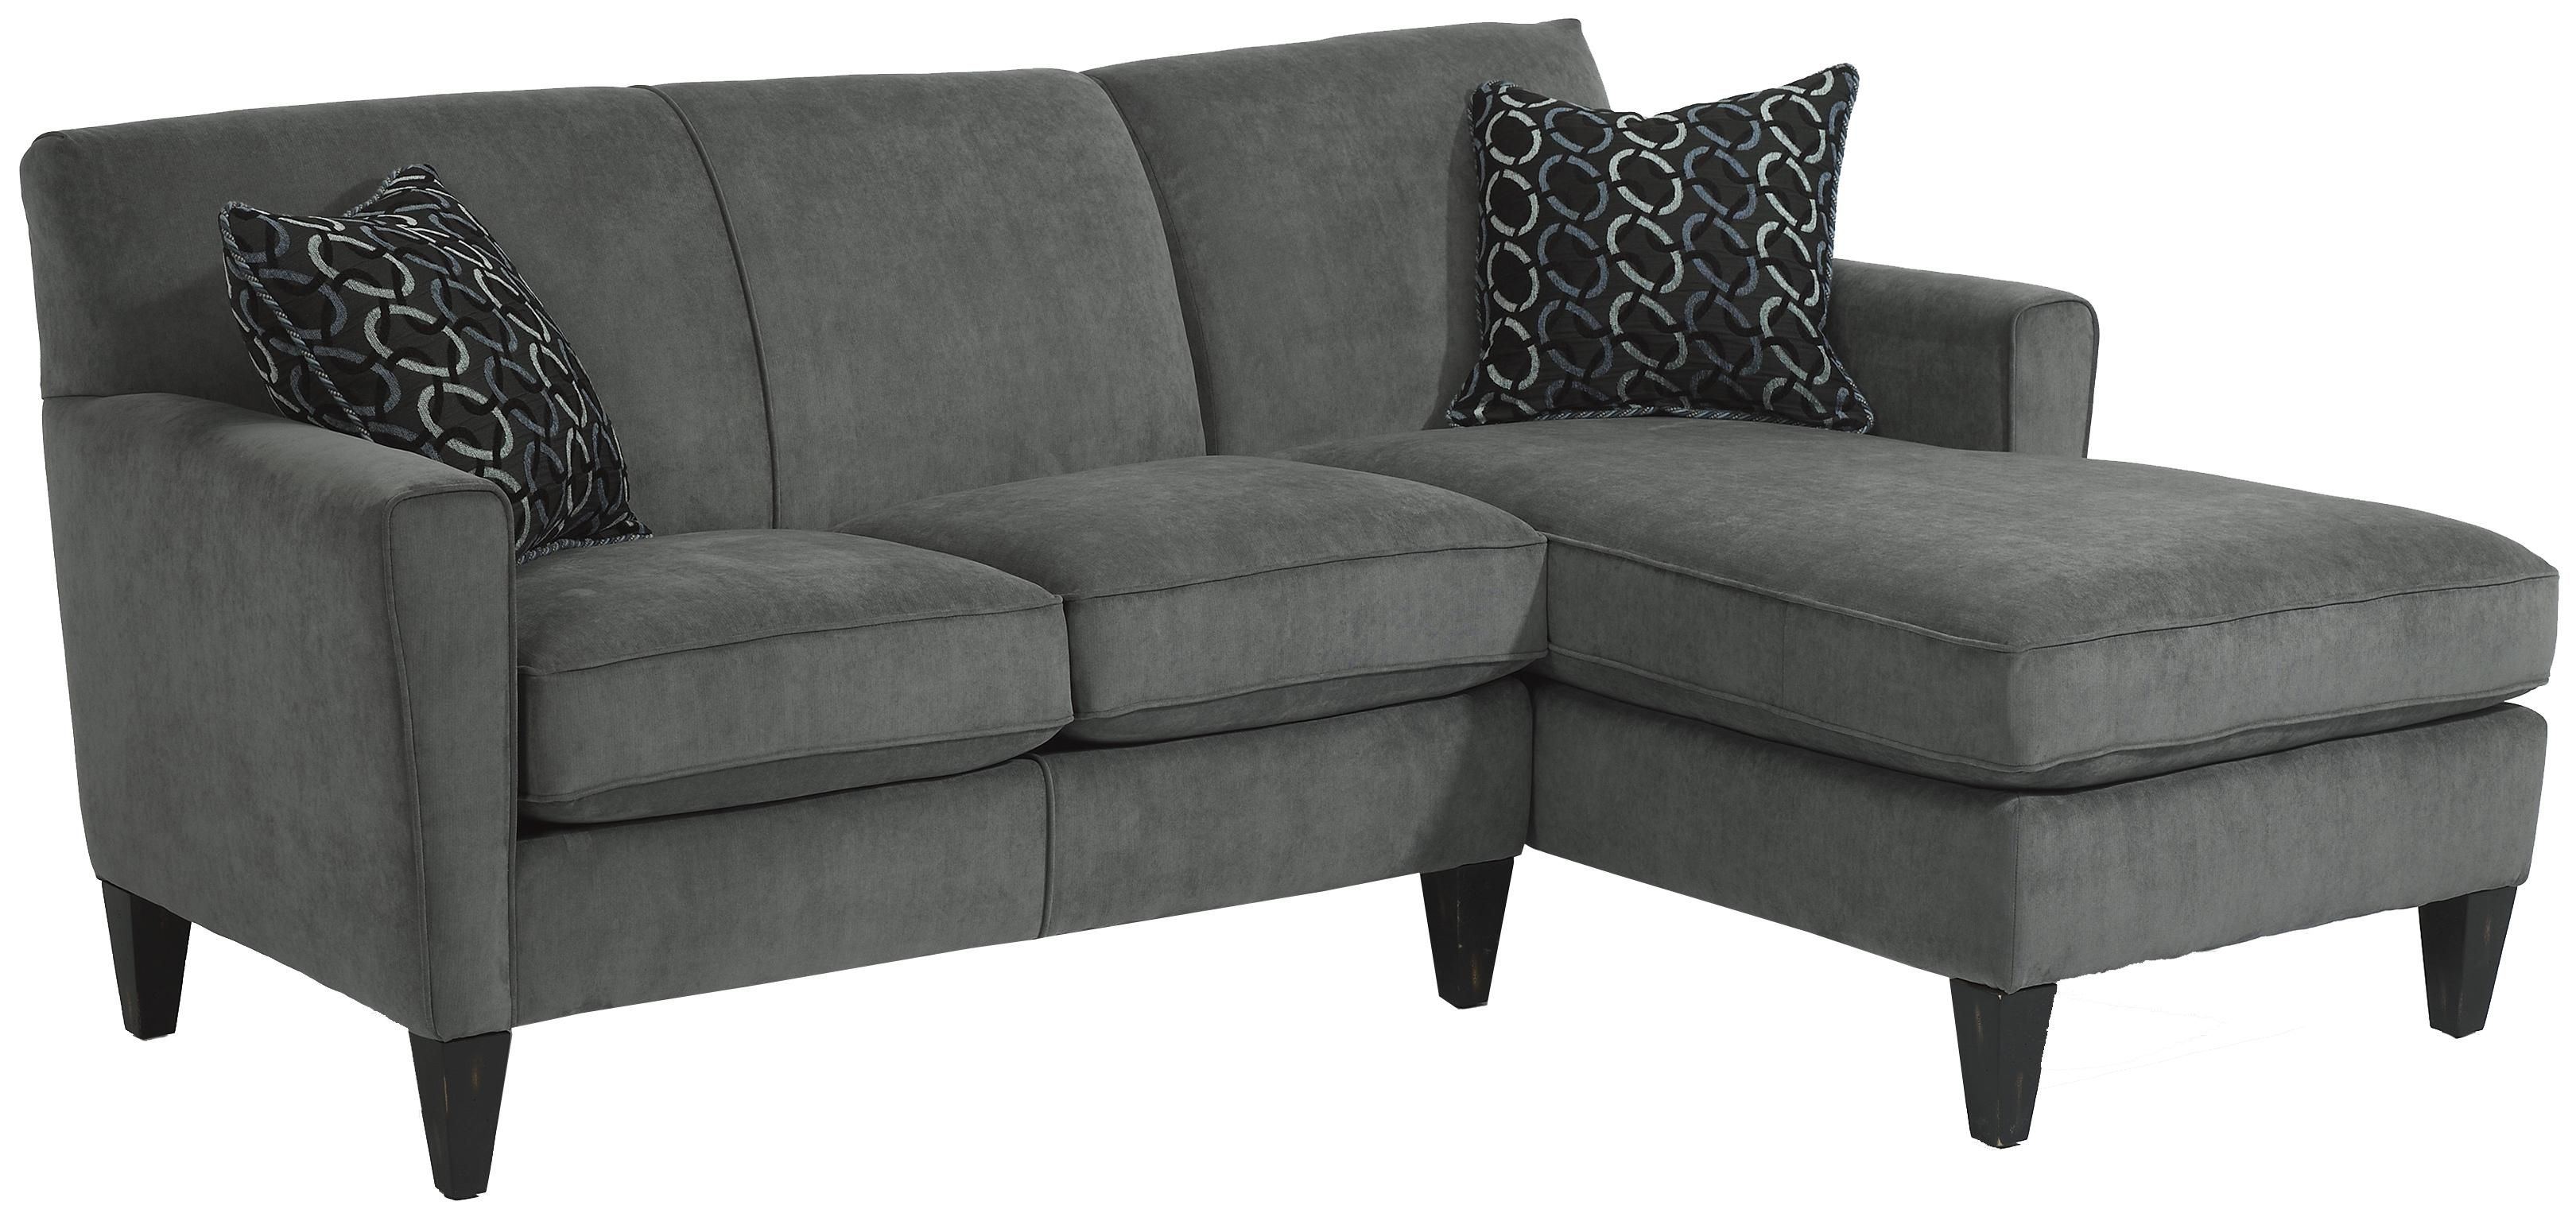 "Digby Sectional Sofa by Flexsteel only 81"" across as shown here"